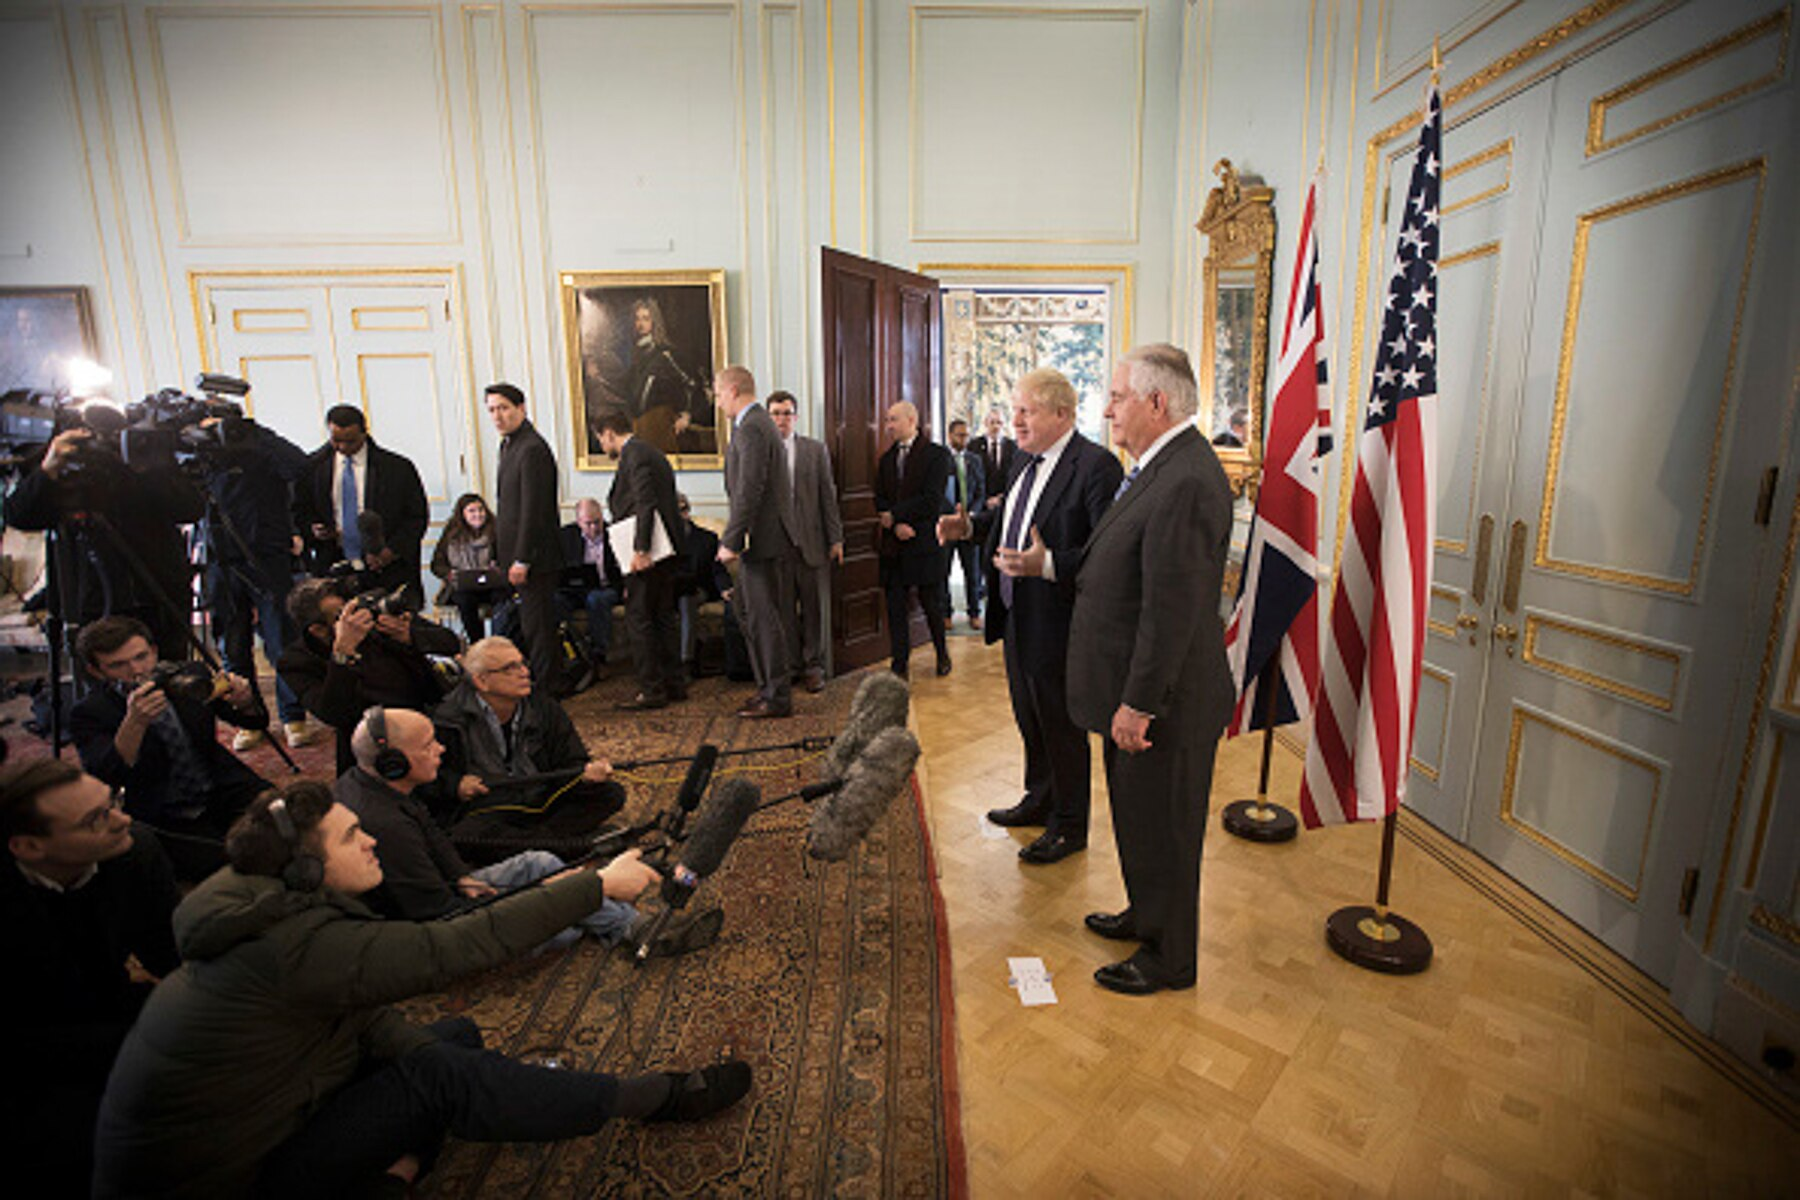 Boris Johnson and Rex Tillerson standing on podium in front of people holding microphones (© Jack Hill/WPA/Getty Images)